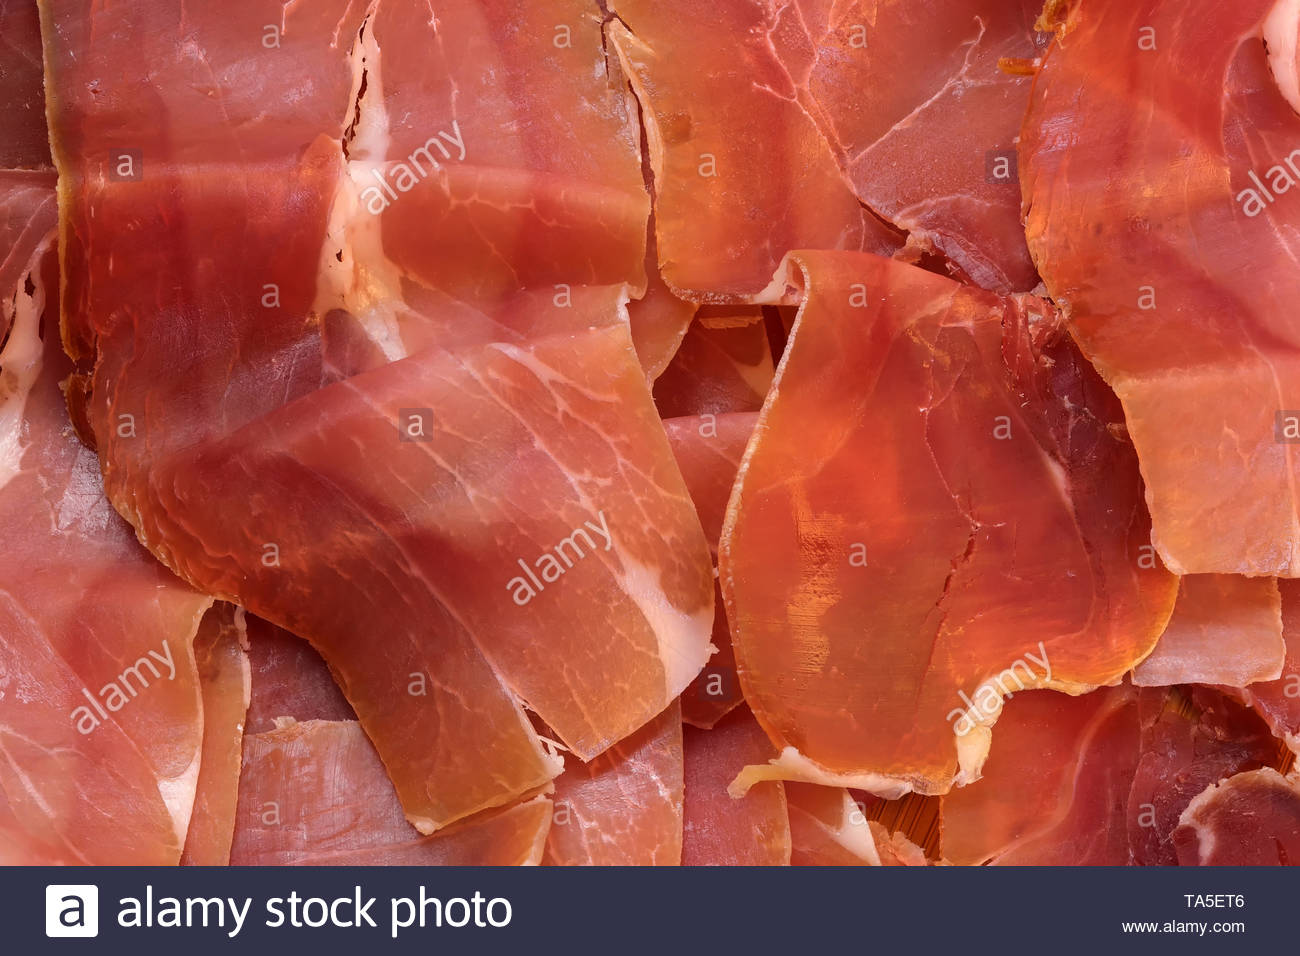 Dried red meat, jamon cut into thin ribbons close-up macro photo background from food - Stock Image